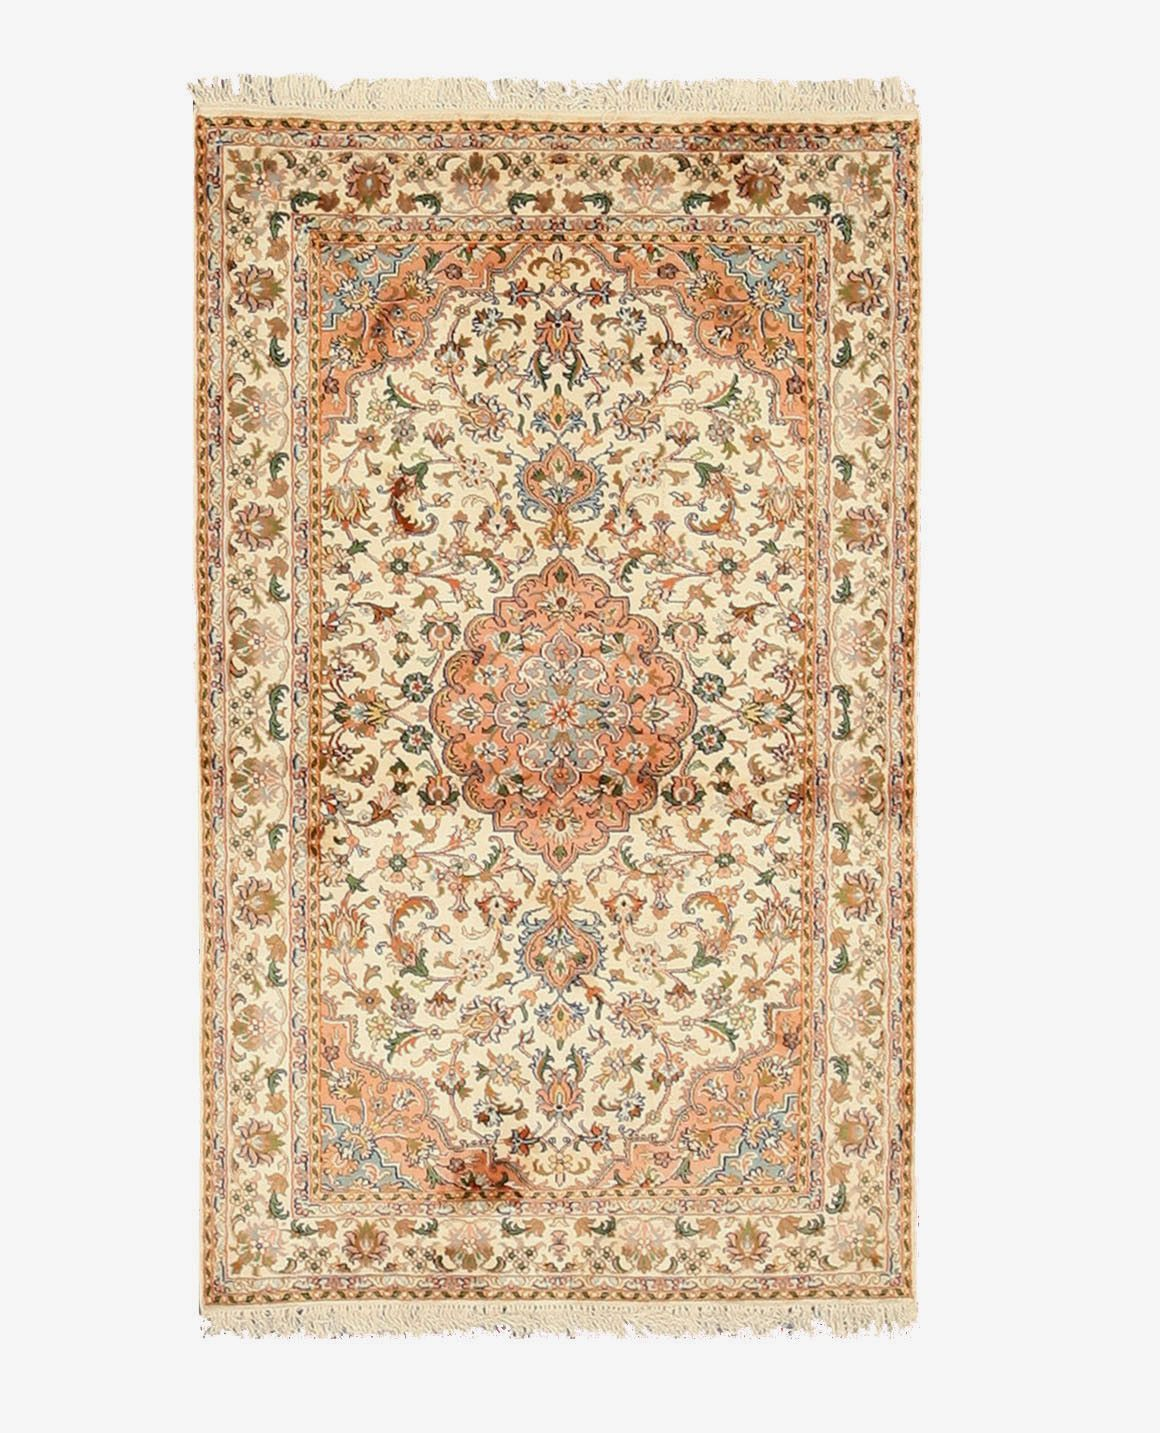 Eorc X35966 Ivory Hand Knotted Silk Kashmir Rug 3 1 X 5 1 Rugs Colorful Rugs Indian Carpet